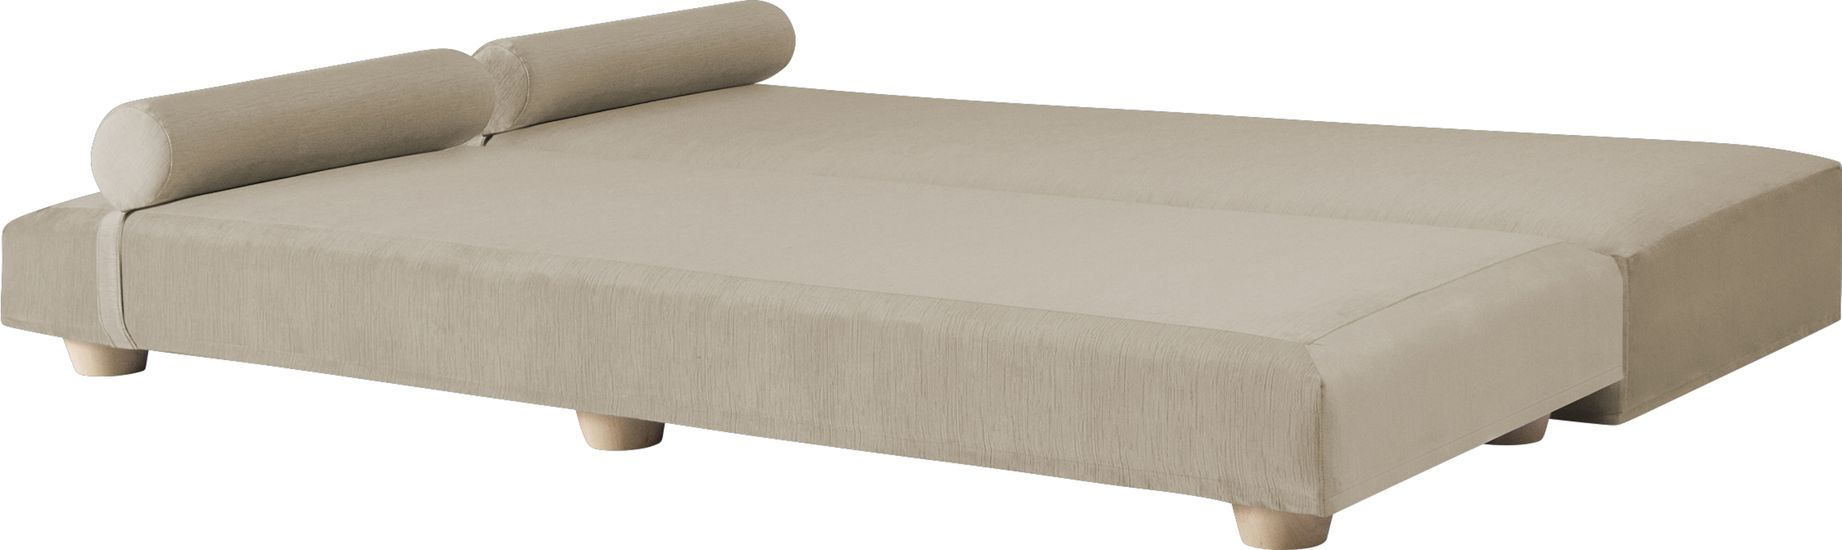 Adelaide Ivory Daybed